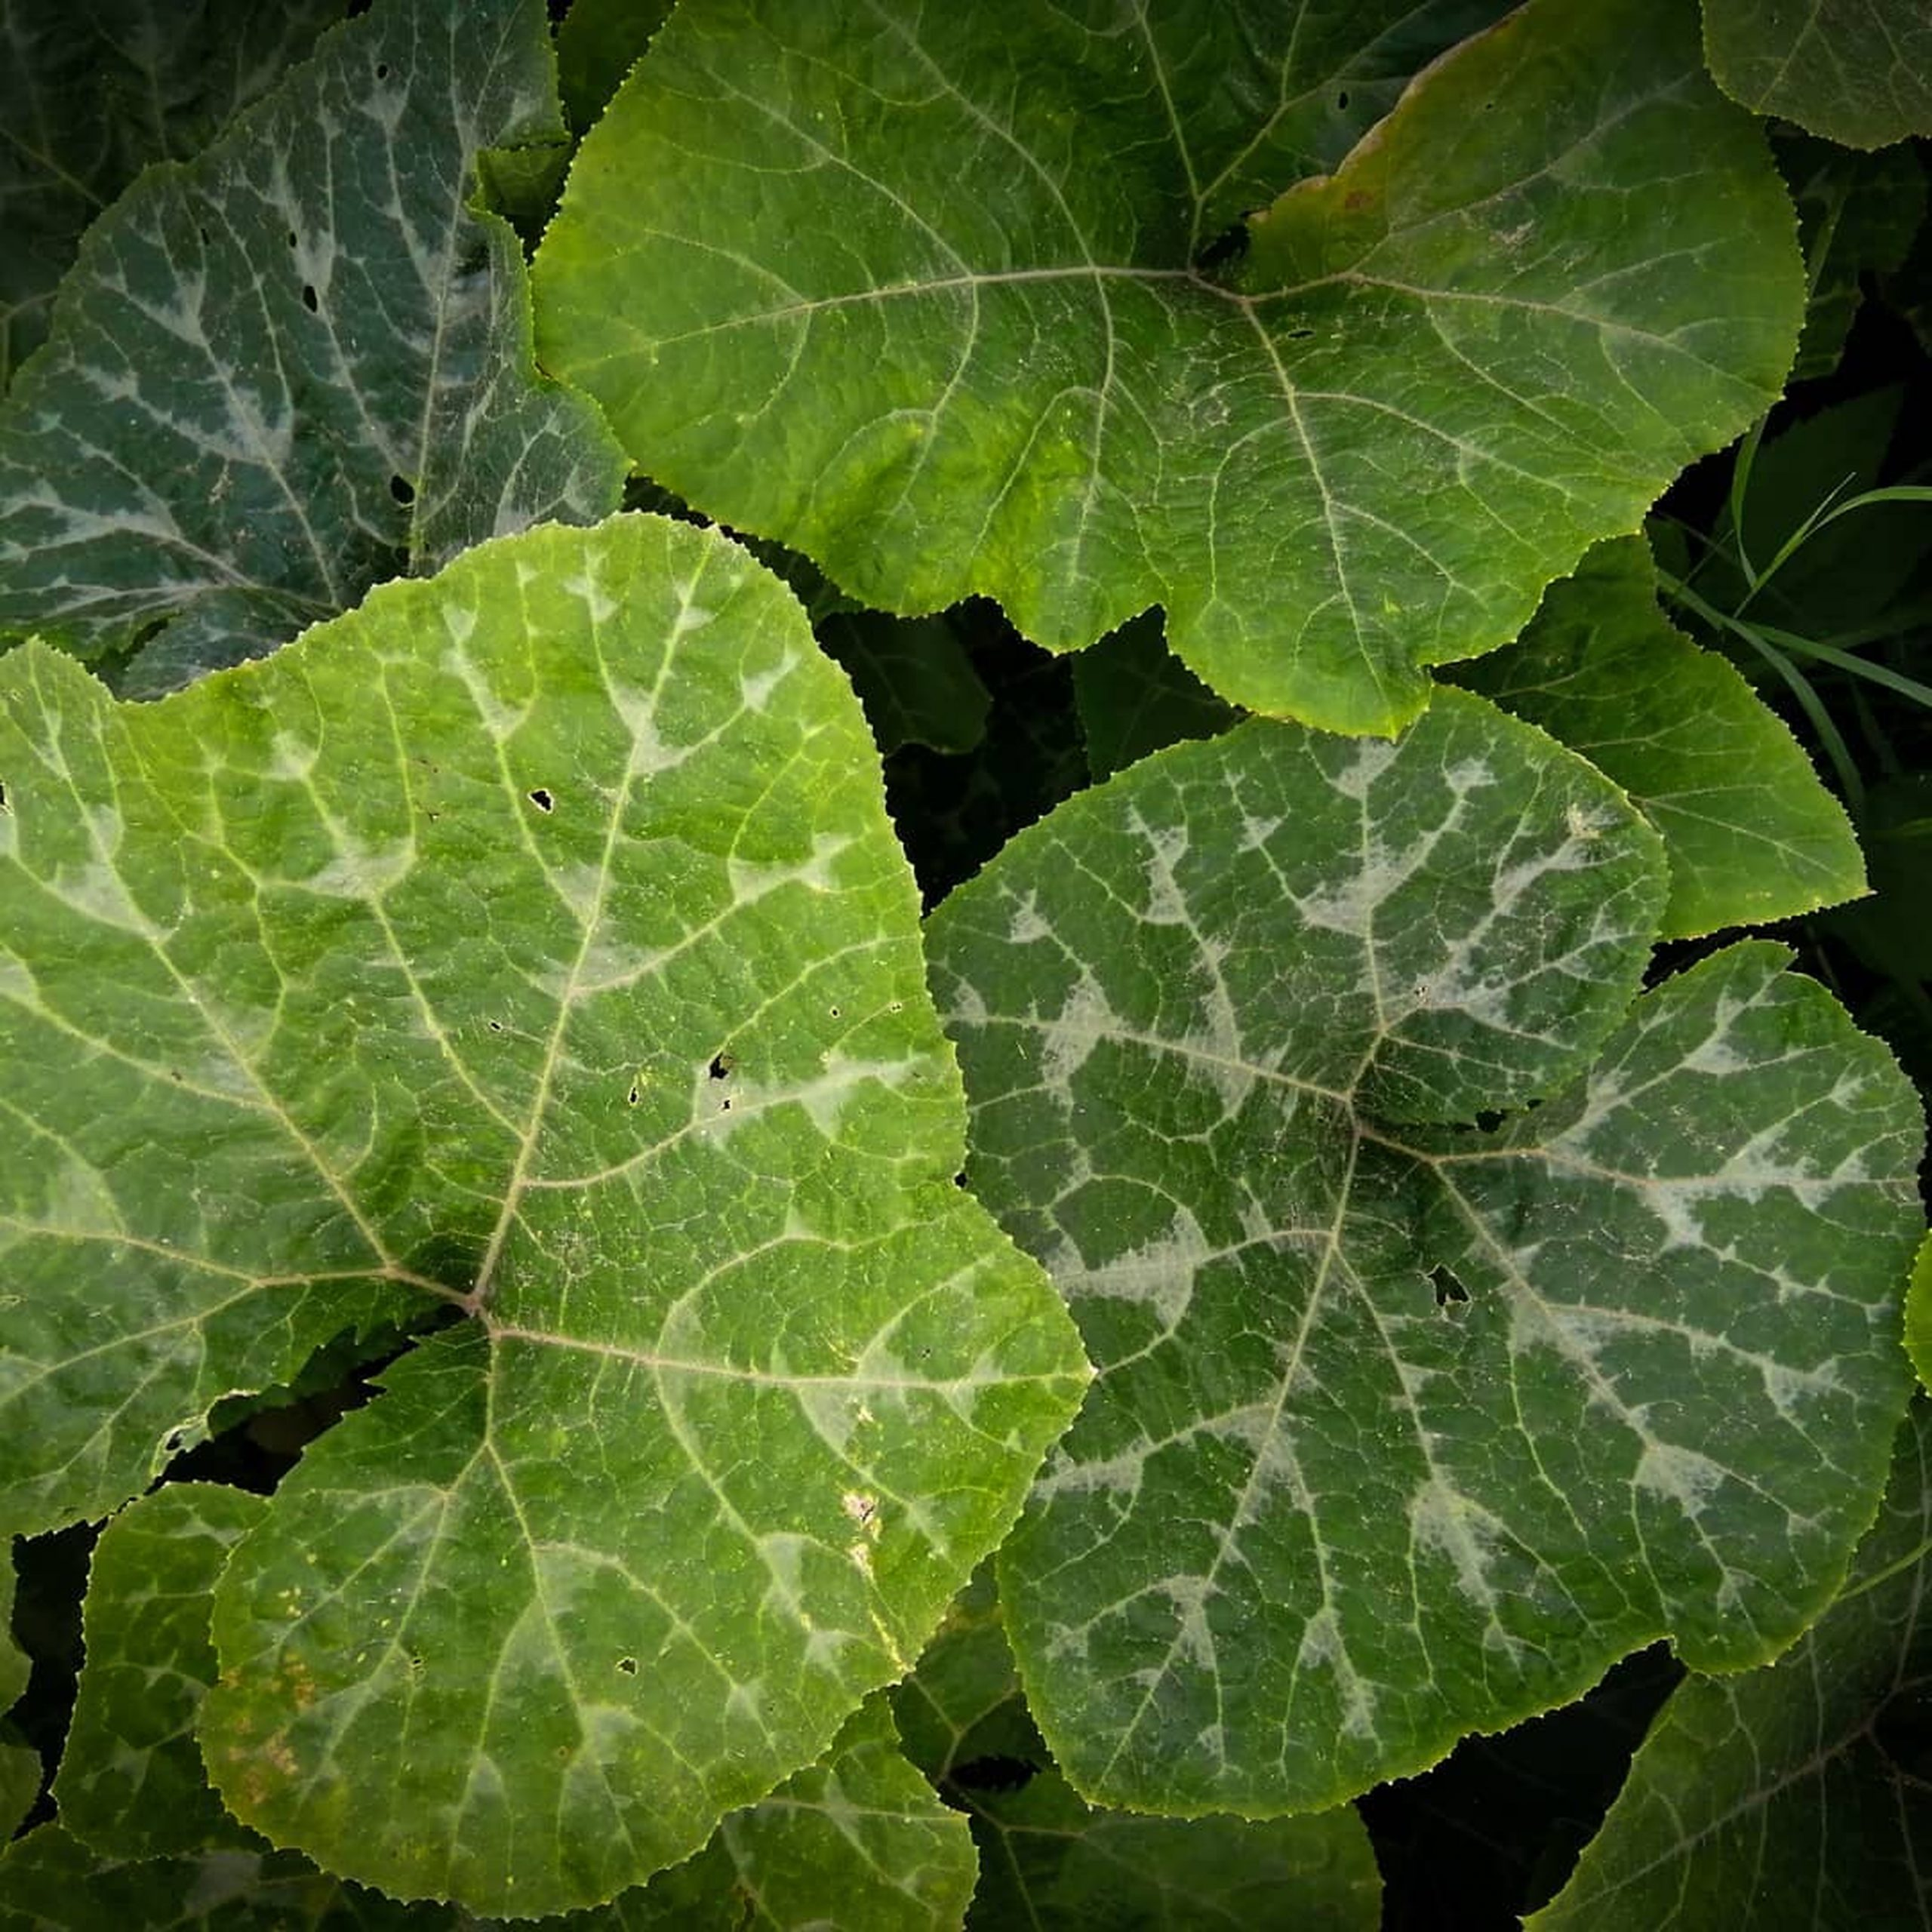 Big Plant Leaves on Focus